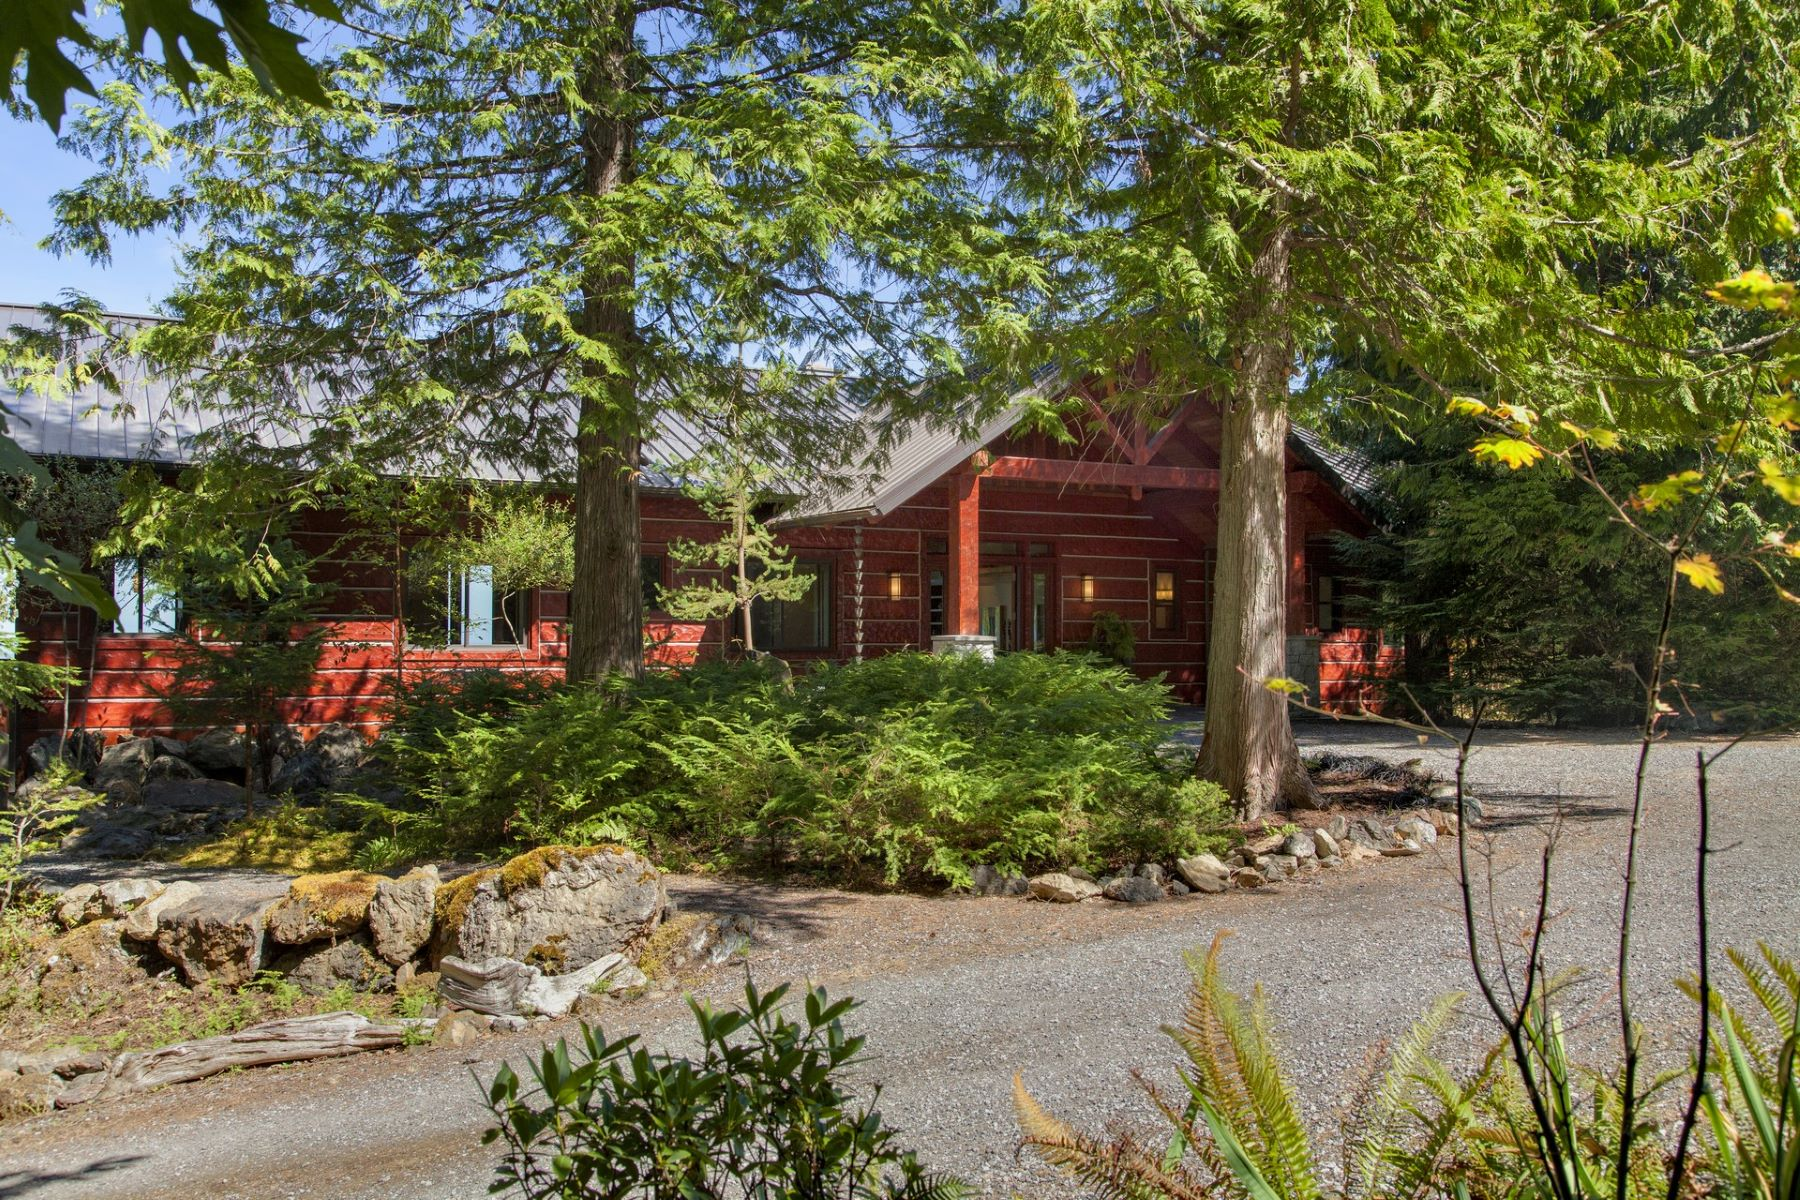 Casa Unifamiliar por un Venta en Spring Hill Lodge 609 Spring Hill Rd, Orcas, Washington, 98245 Estados Unidos